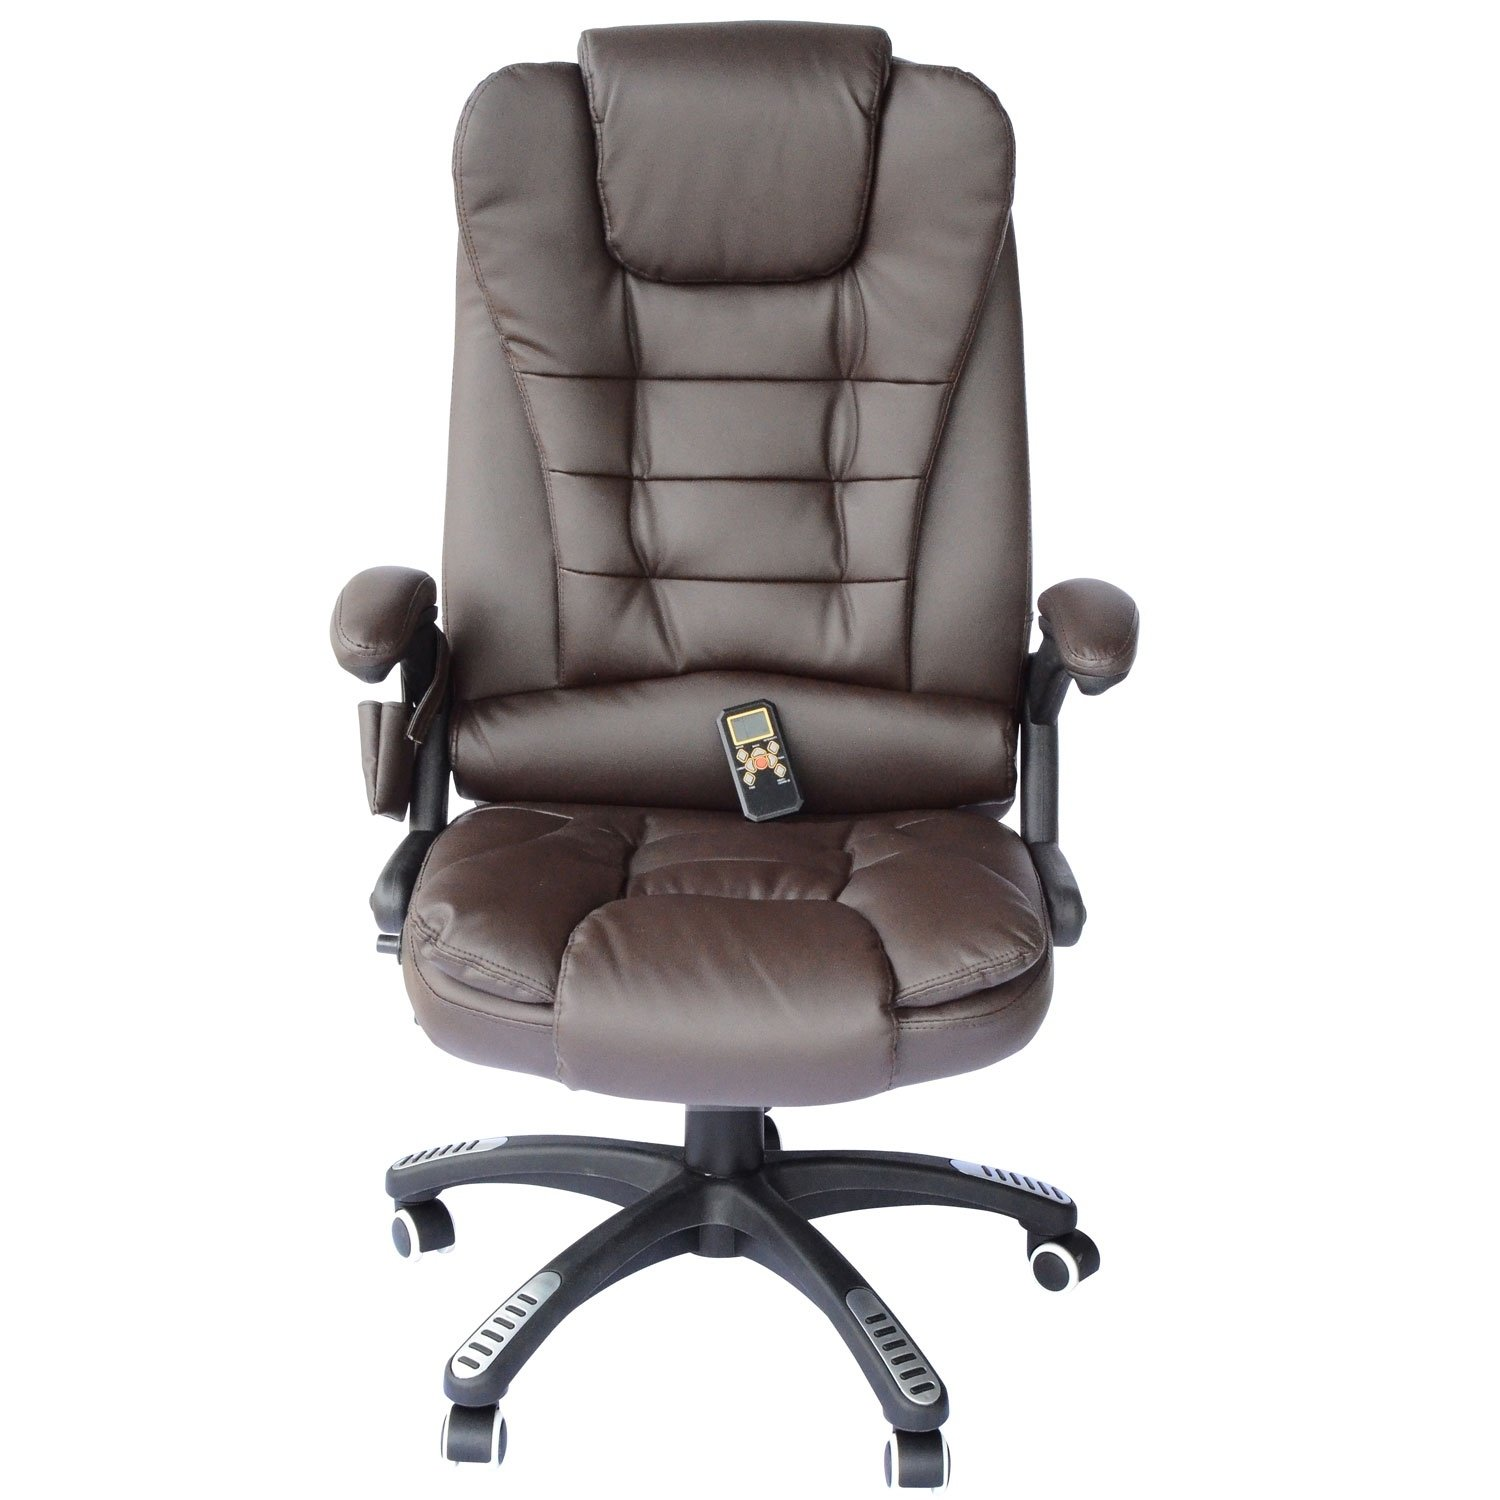 Shop HomCom Executive Ergonomic Heated Vibrating Massage Office Chair-  Brown - Free Shipping Today - Overstock - 18088215